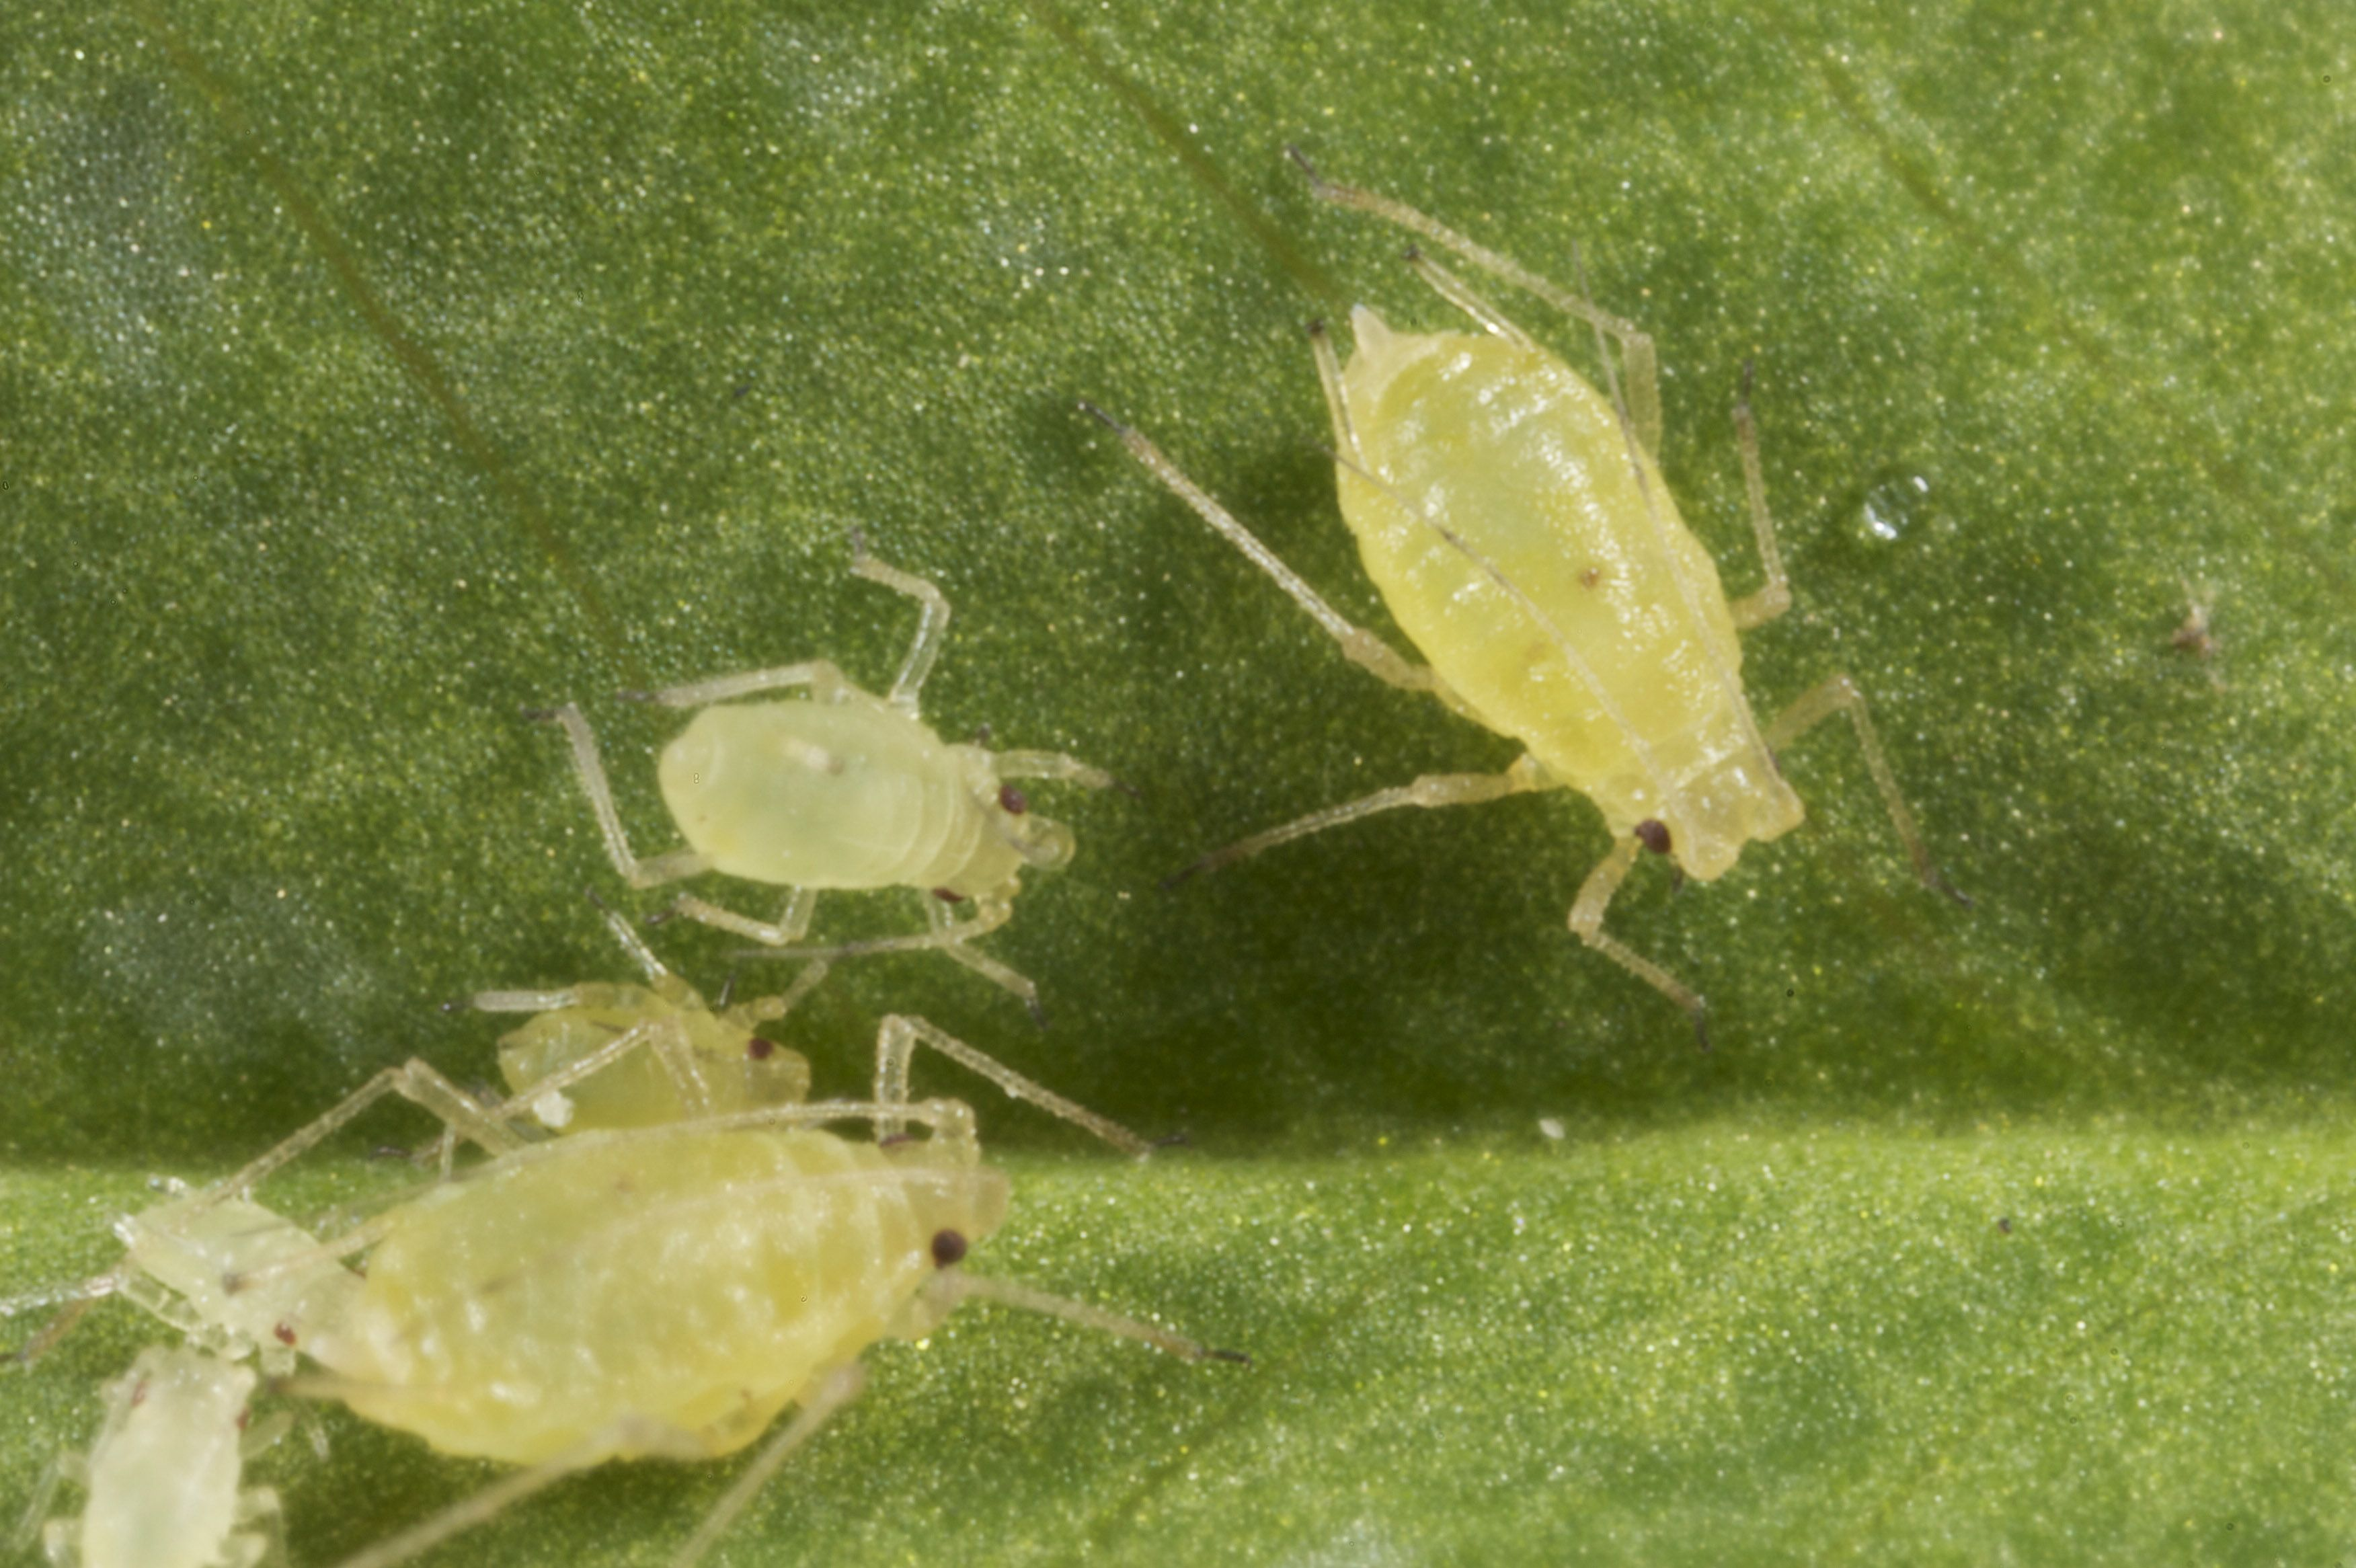 Green peach aphids